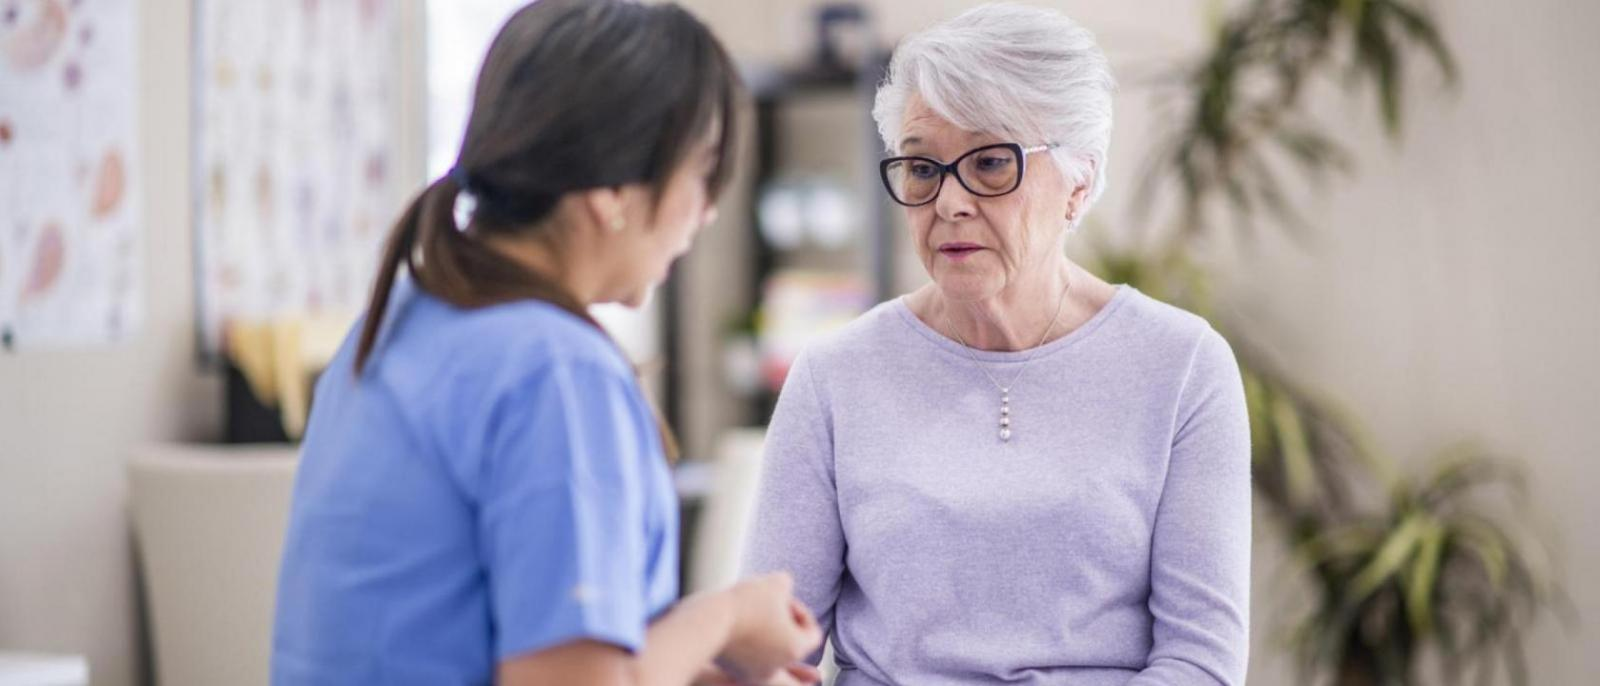 A senior woman talks to her doctor about some recent struggles she is going through.